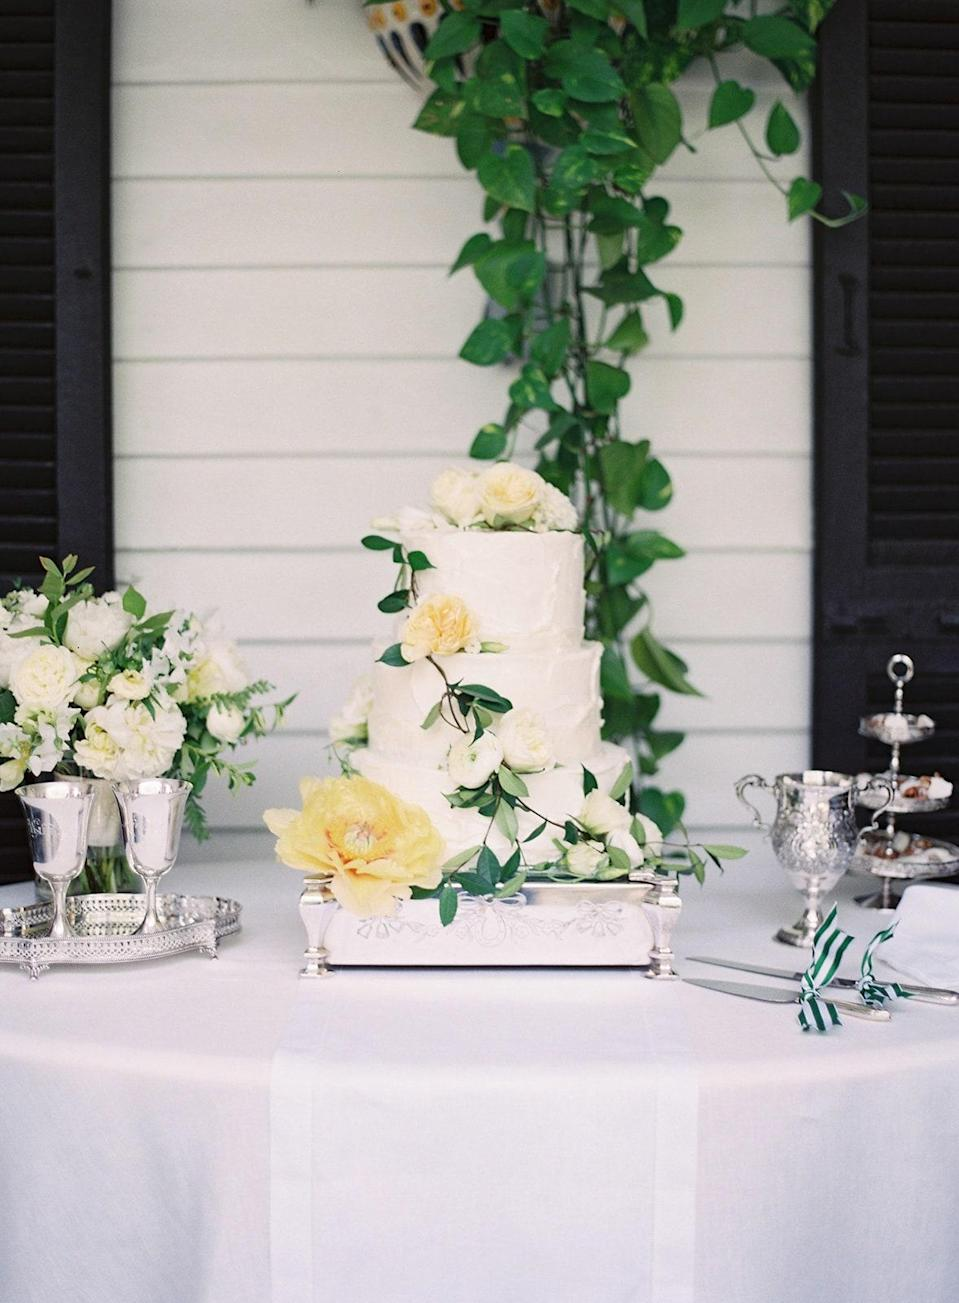 We had a layered almond cake dressed with flowers displayed on a beautiful silver cake stand. We served the cake with fresh peach ice cream, yum!